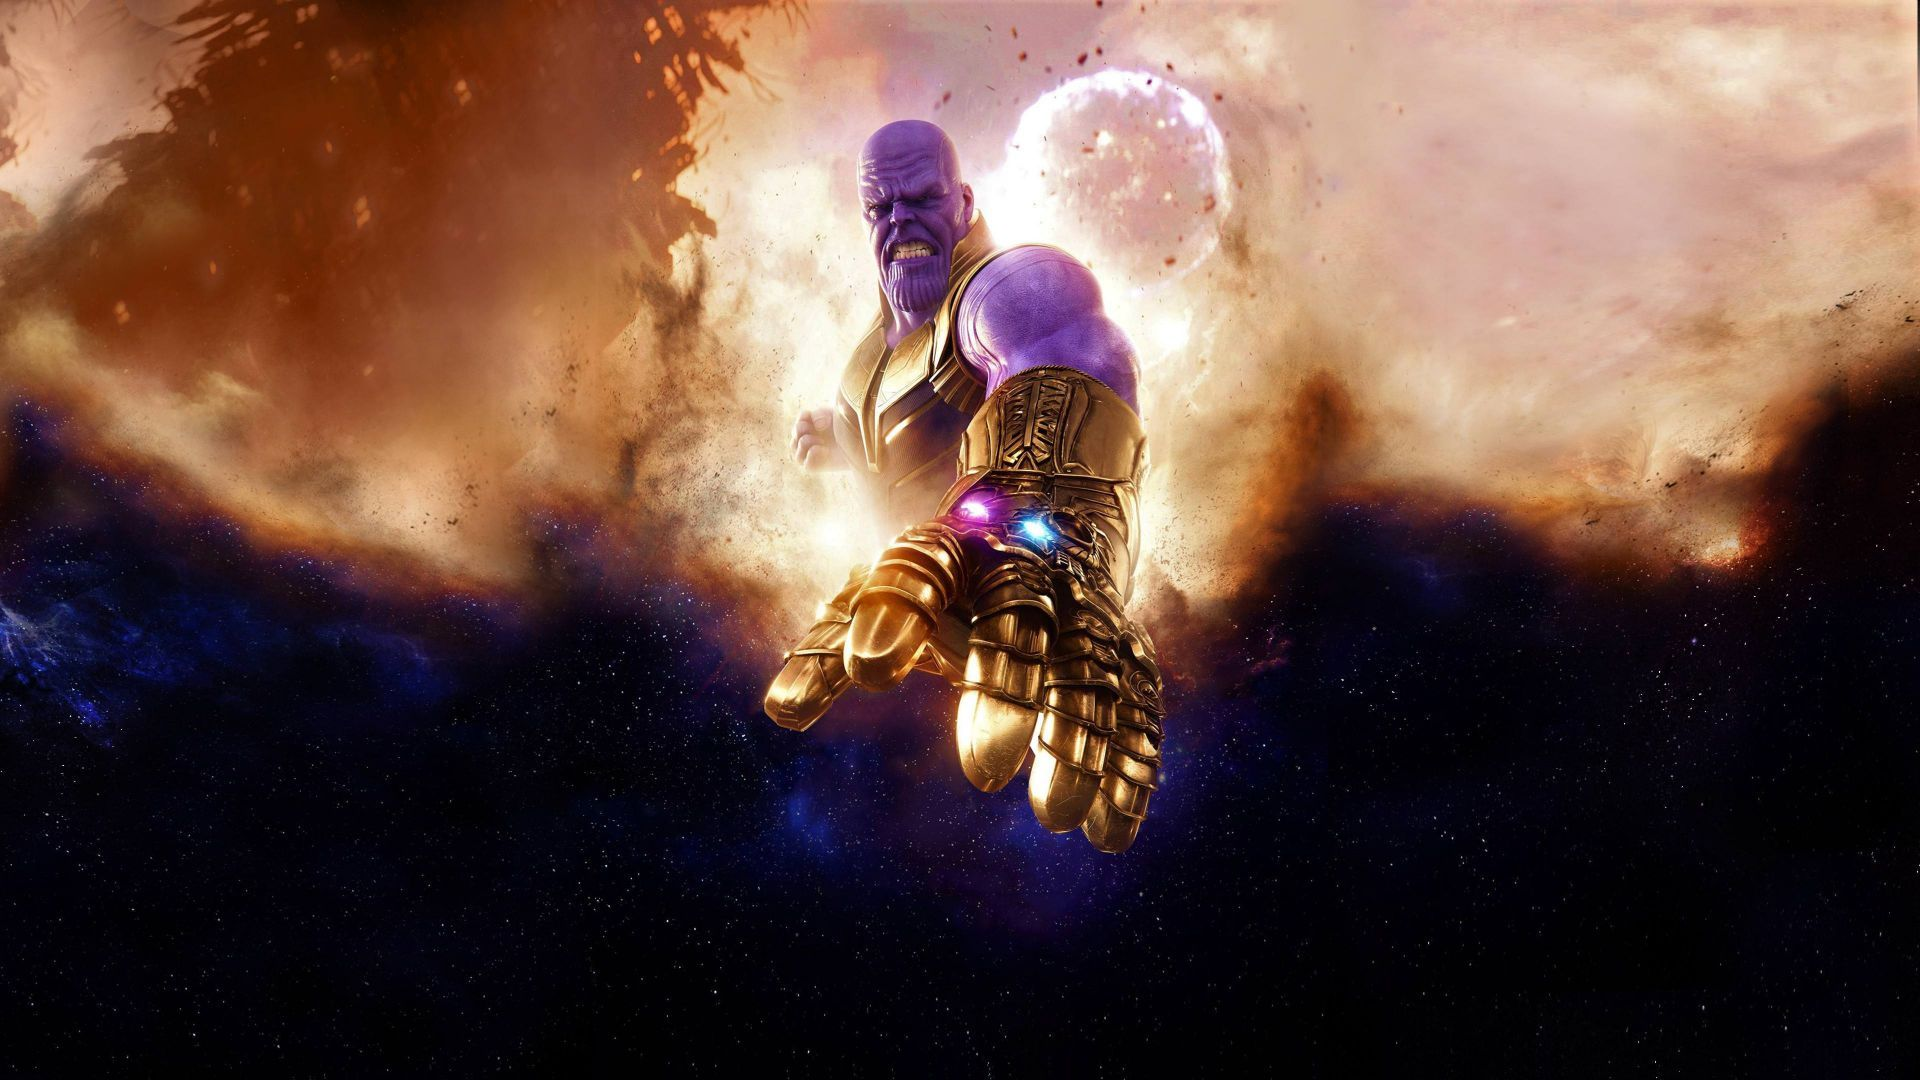 Download Wallpapers Of Thanos Avengers Infinity War 4k Movies